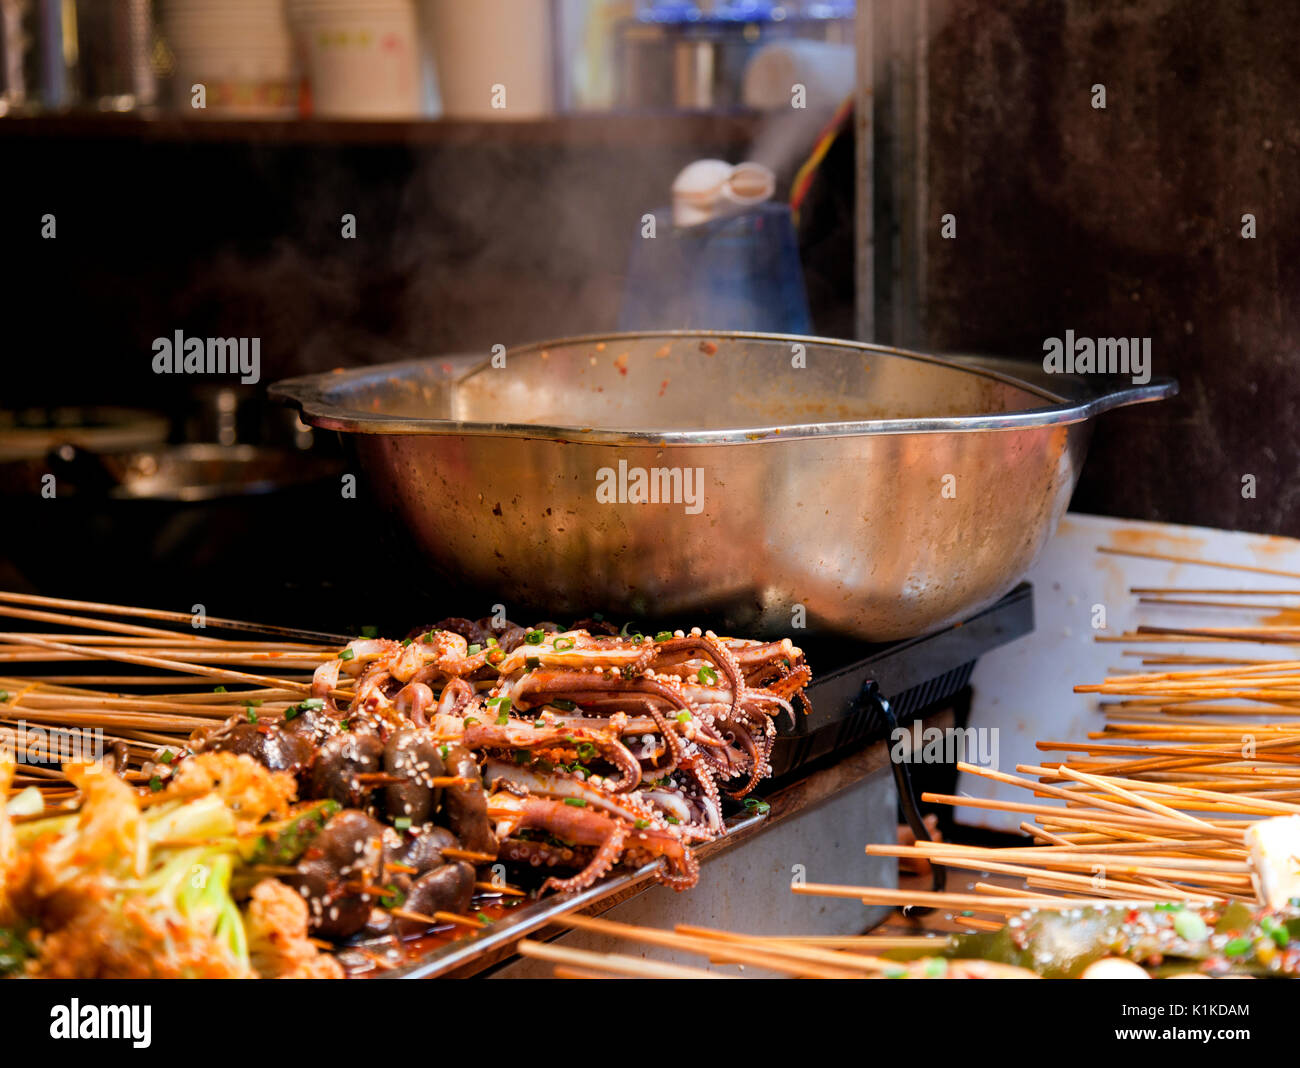 Numerous bits of skewered food, including squid, bugs, tofu, and mystery meat await the steaming wok in this tiny food stall in Ciqikou Old Town, Chon - Stock Image